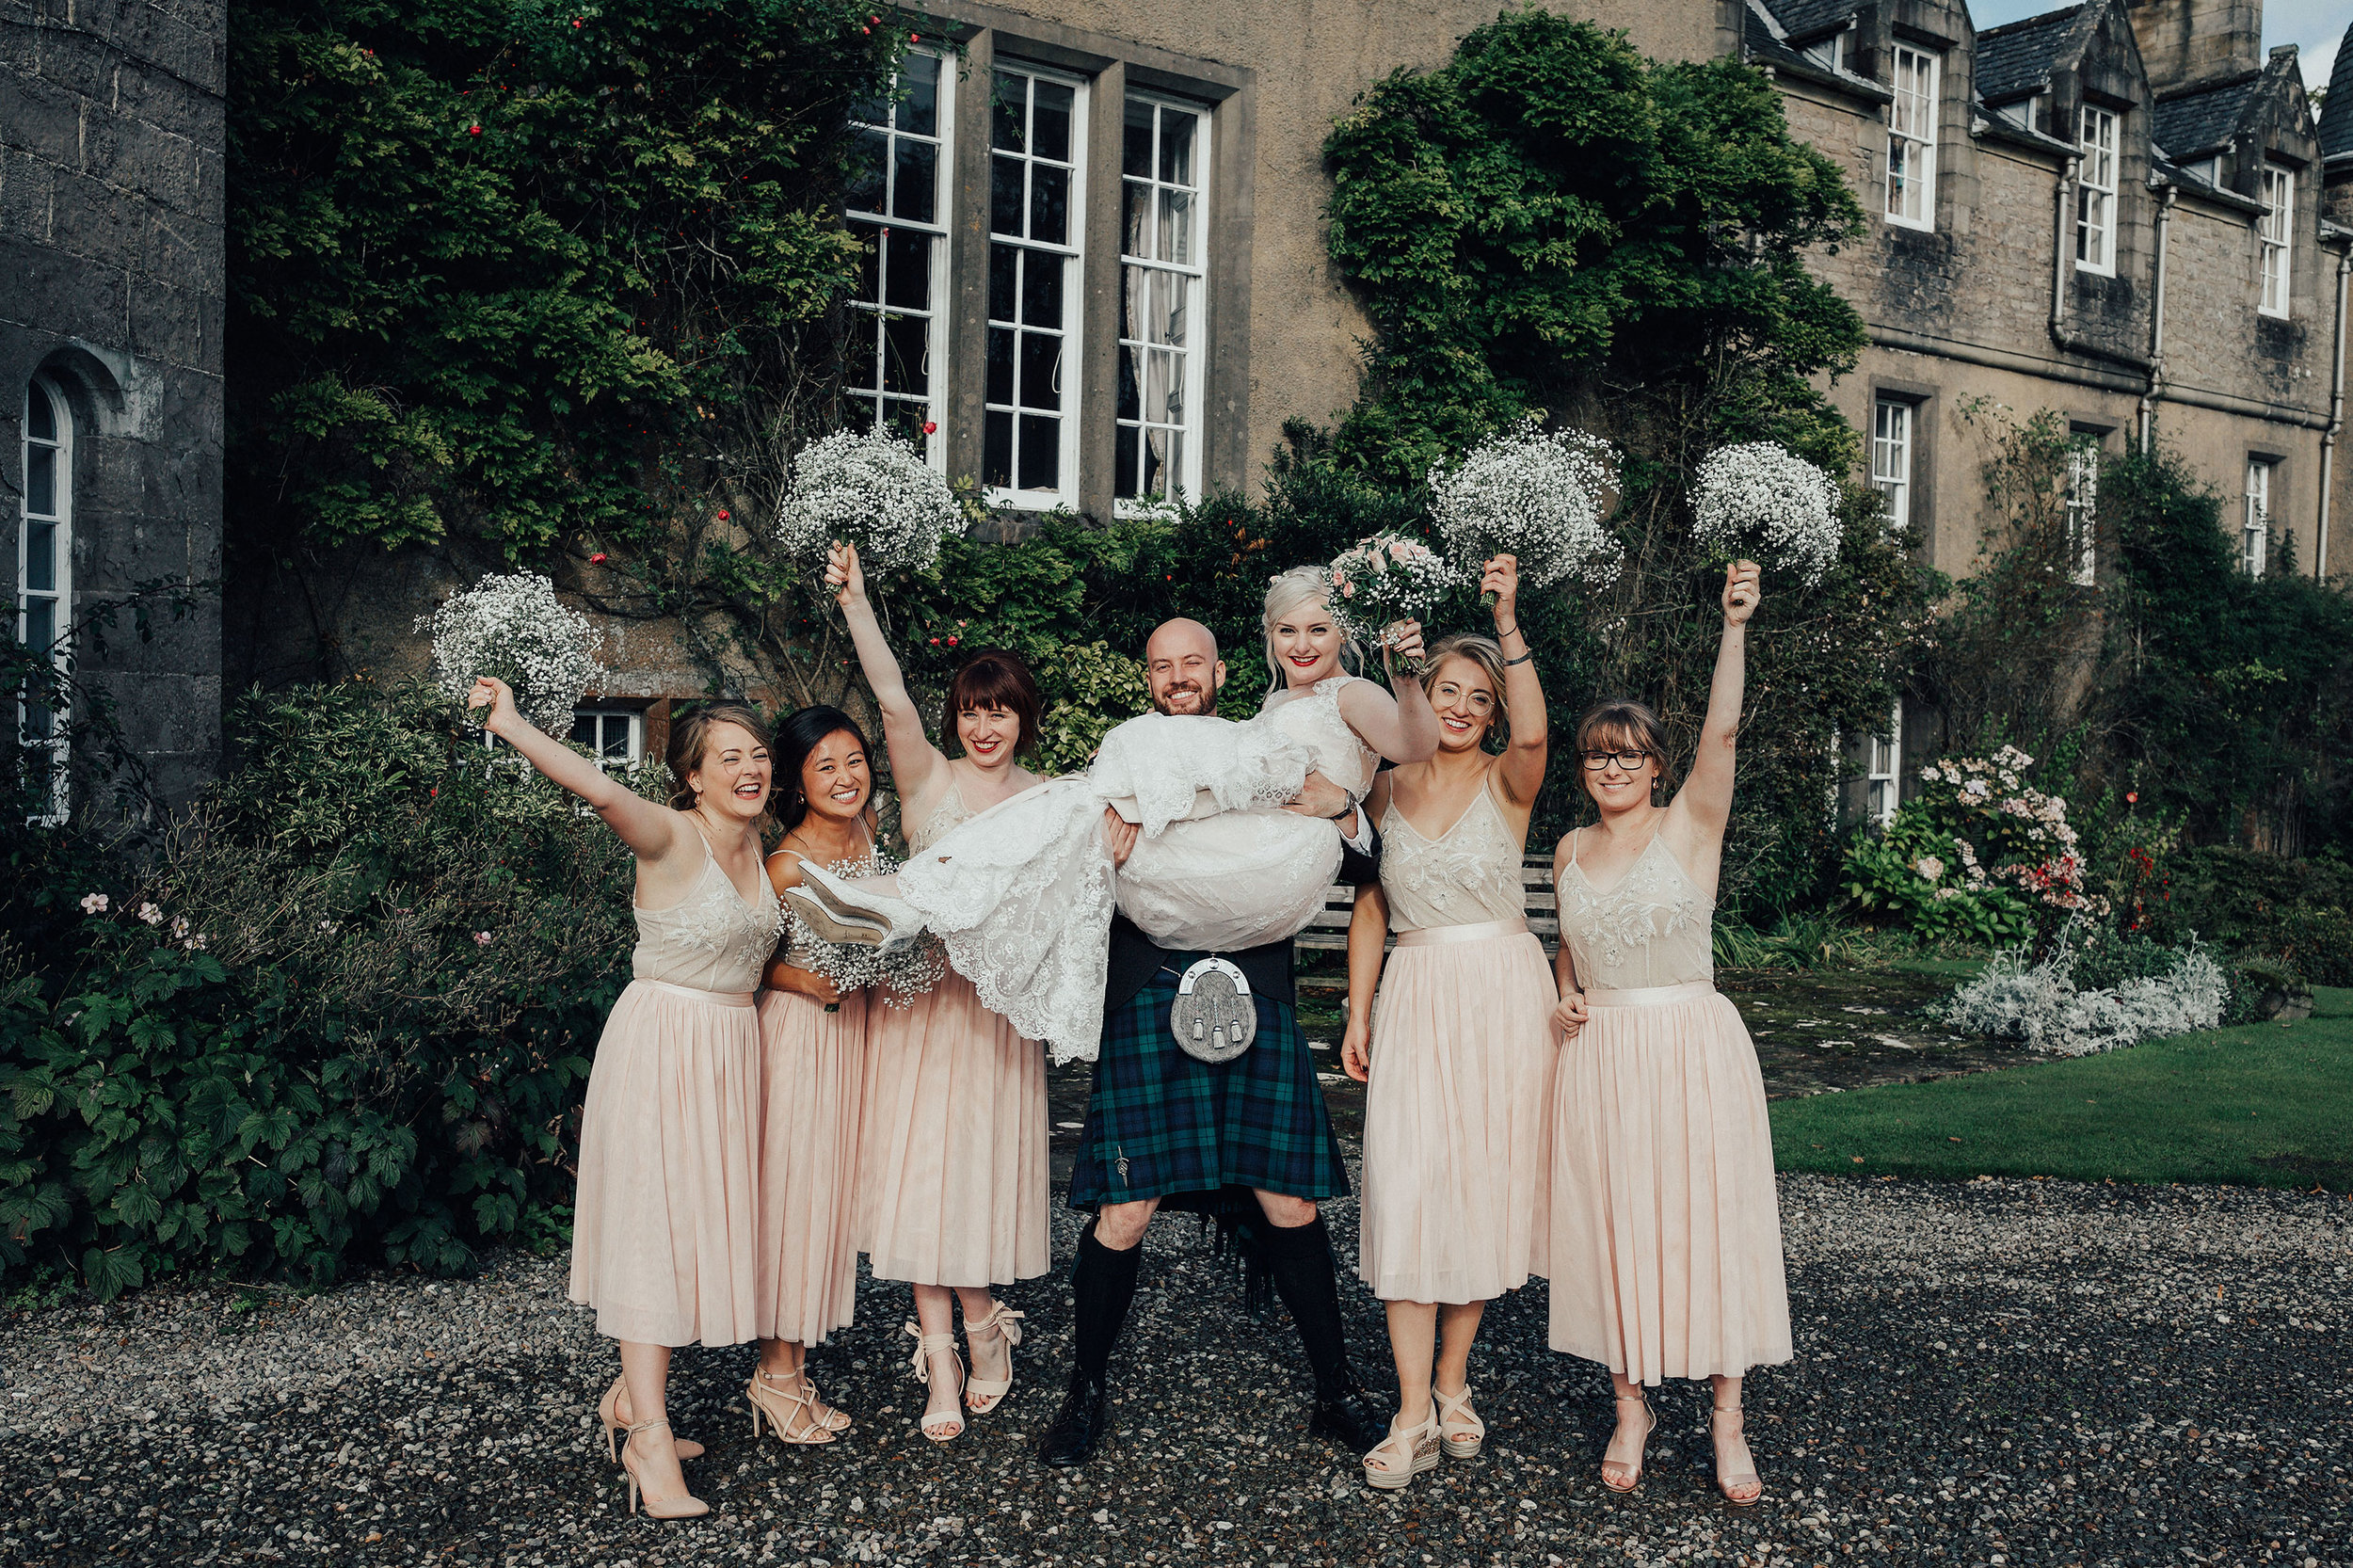 BOTURICH_CASTLE_WEDDING_PHOTOGRAPHER_PJ_PHILLIPS_PHOTOGRAPHY_95.jpg